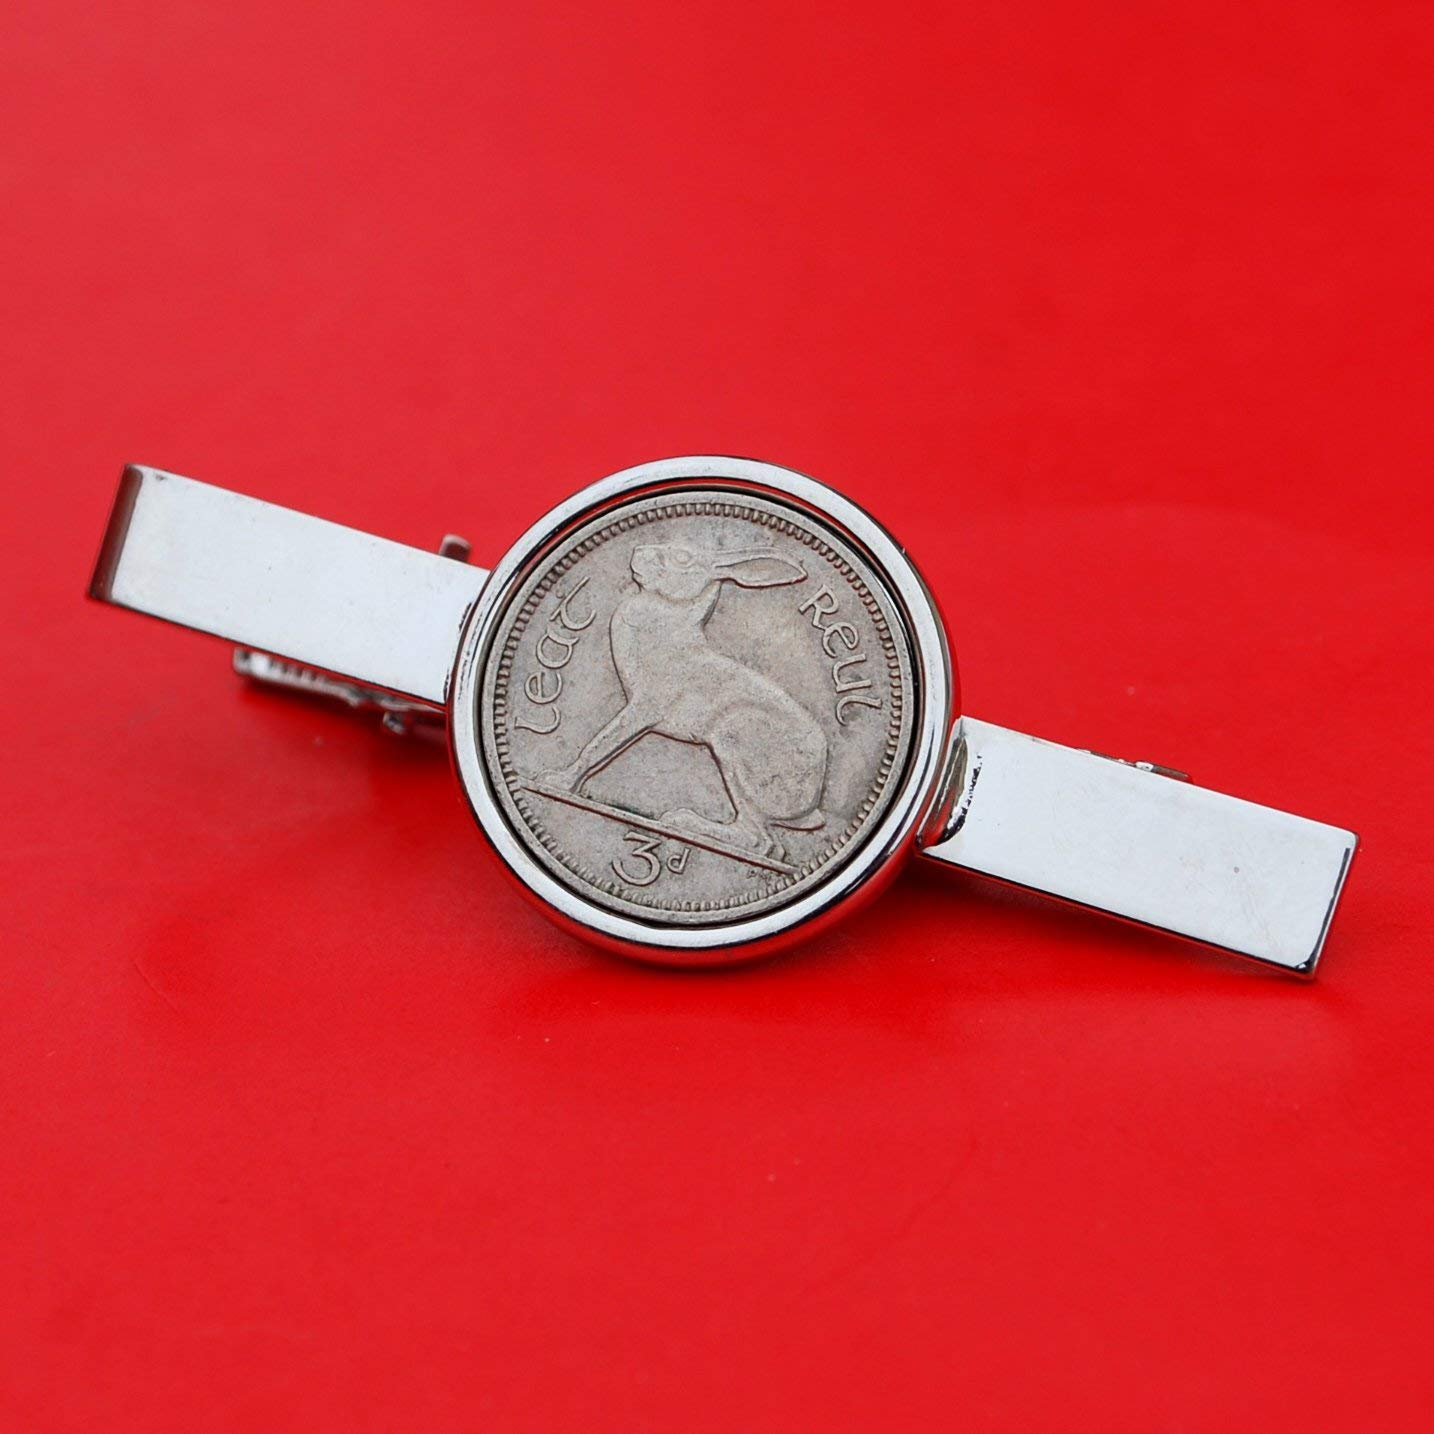 c6519dc58656 Get Quotations · 1928 ~ 1968 Irish Ireland 3 Pence Coin Silver Plated Tie  Clip Bar Pin NEW -